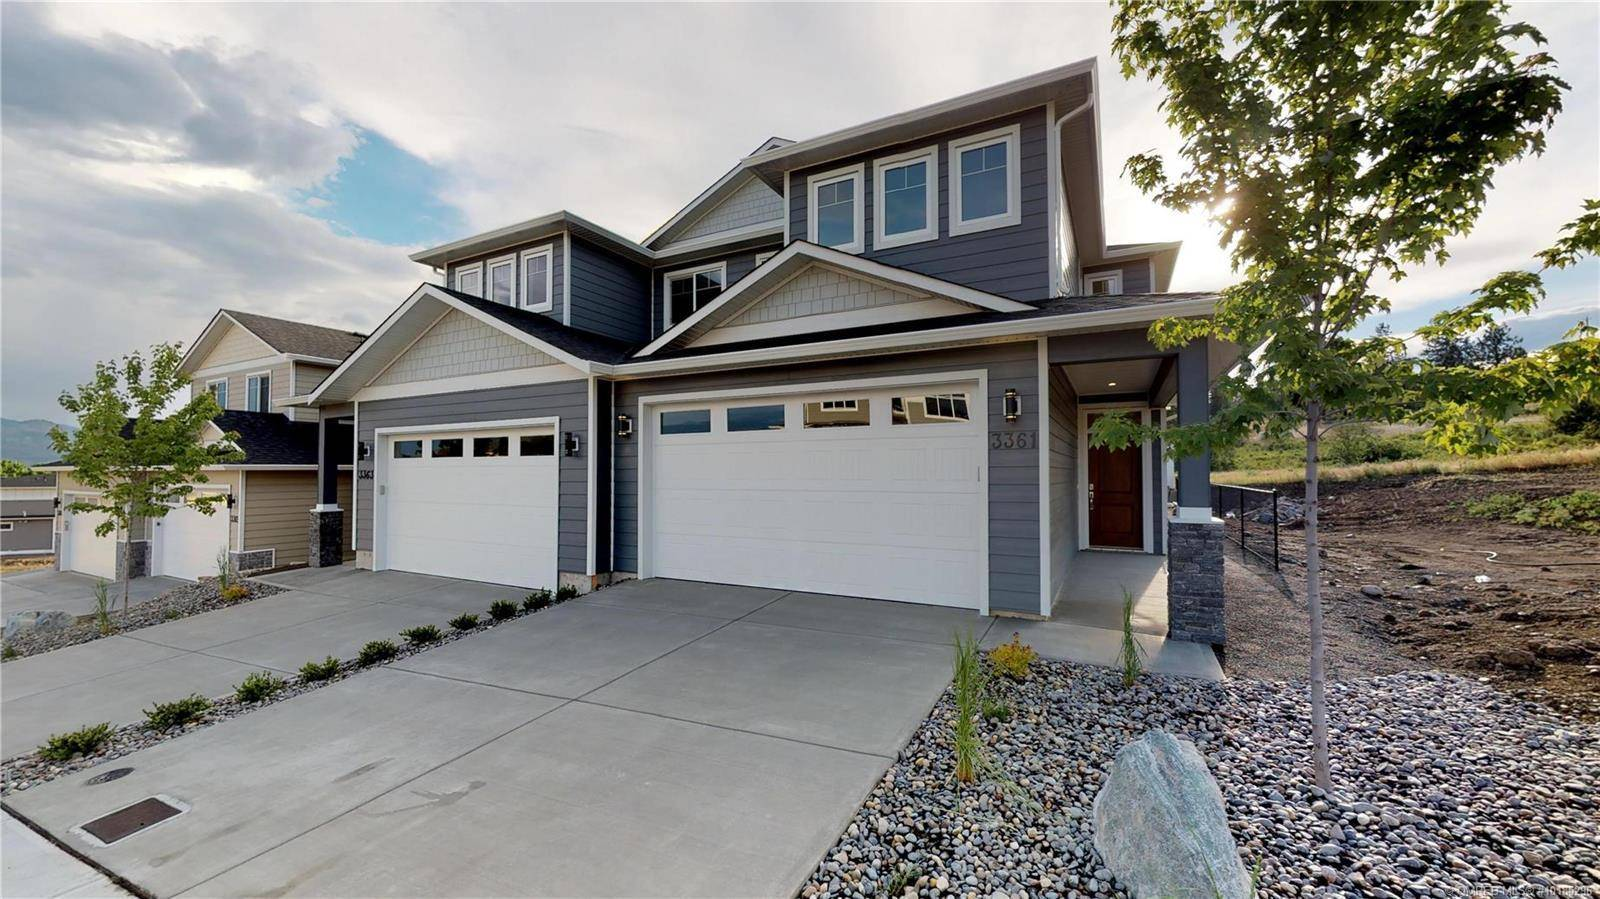 Townhouse for sale at 3365 Hawks Cres West Kelowna British Columbia - MLS: 10185296